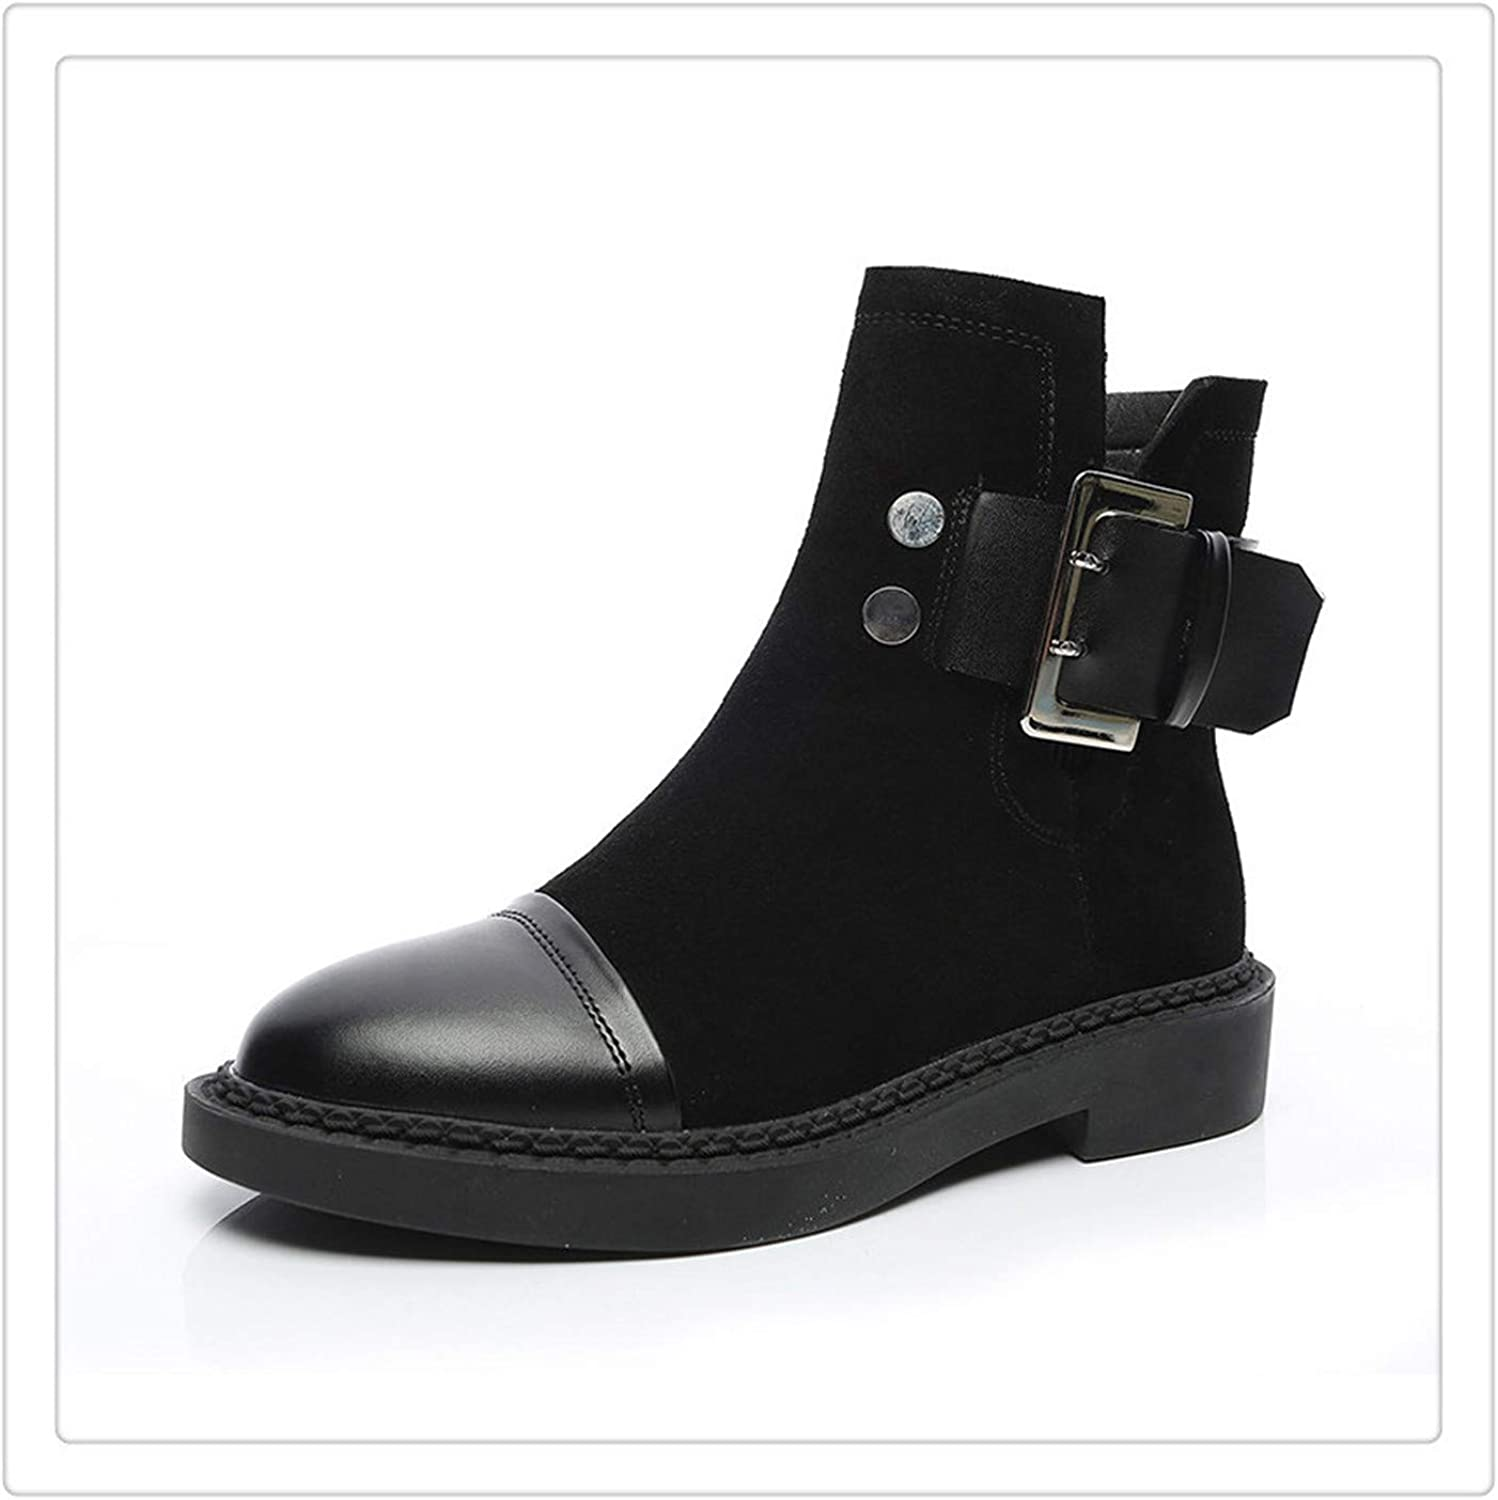 Anghuluqub Women Boots Genuine Leather Winter Ankle shoes Warm Plush Black Boot